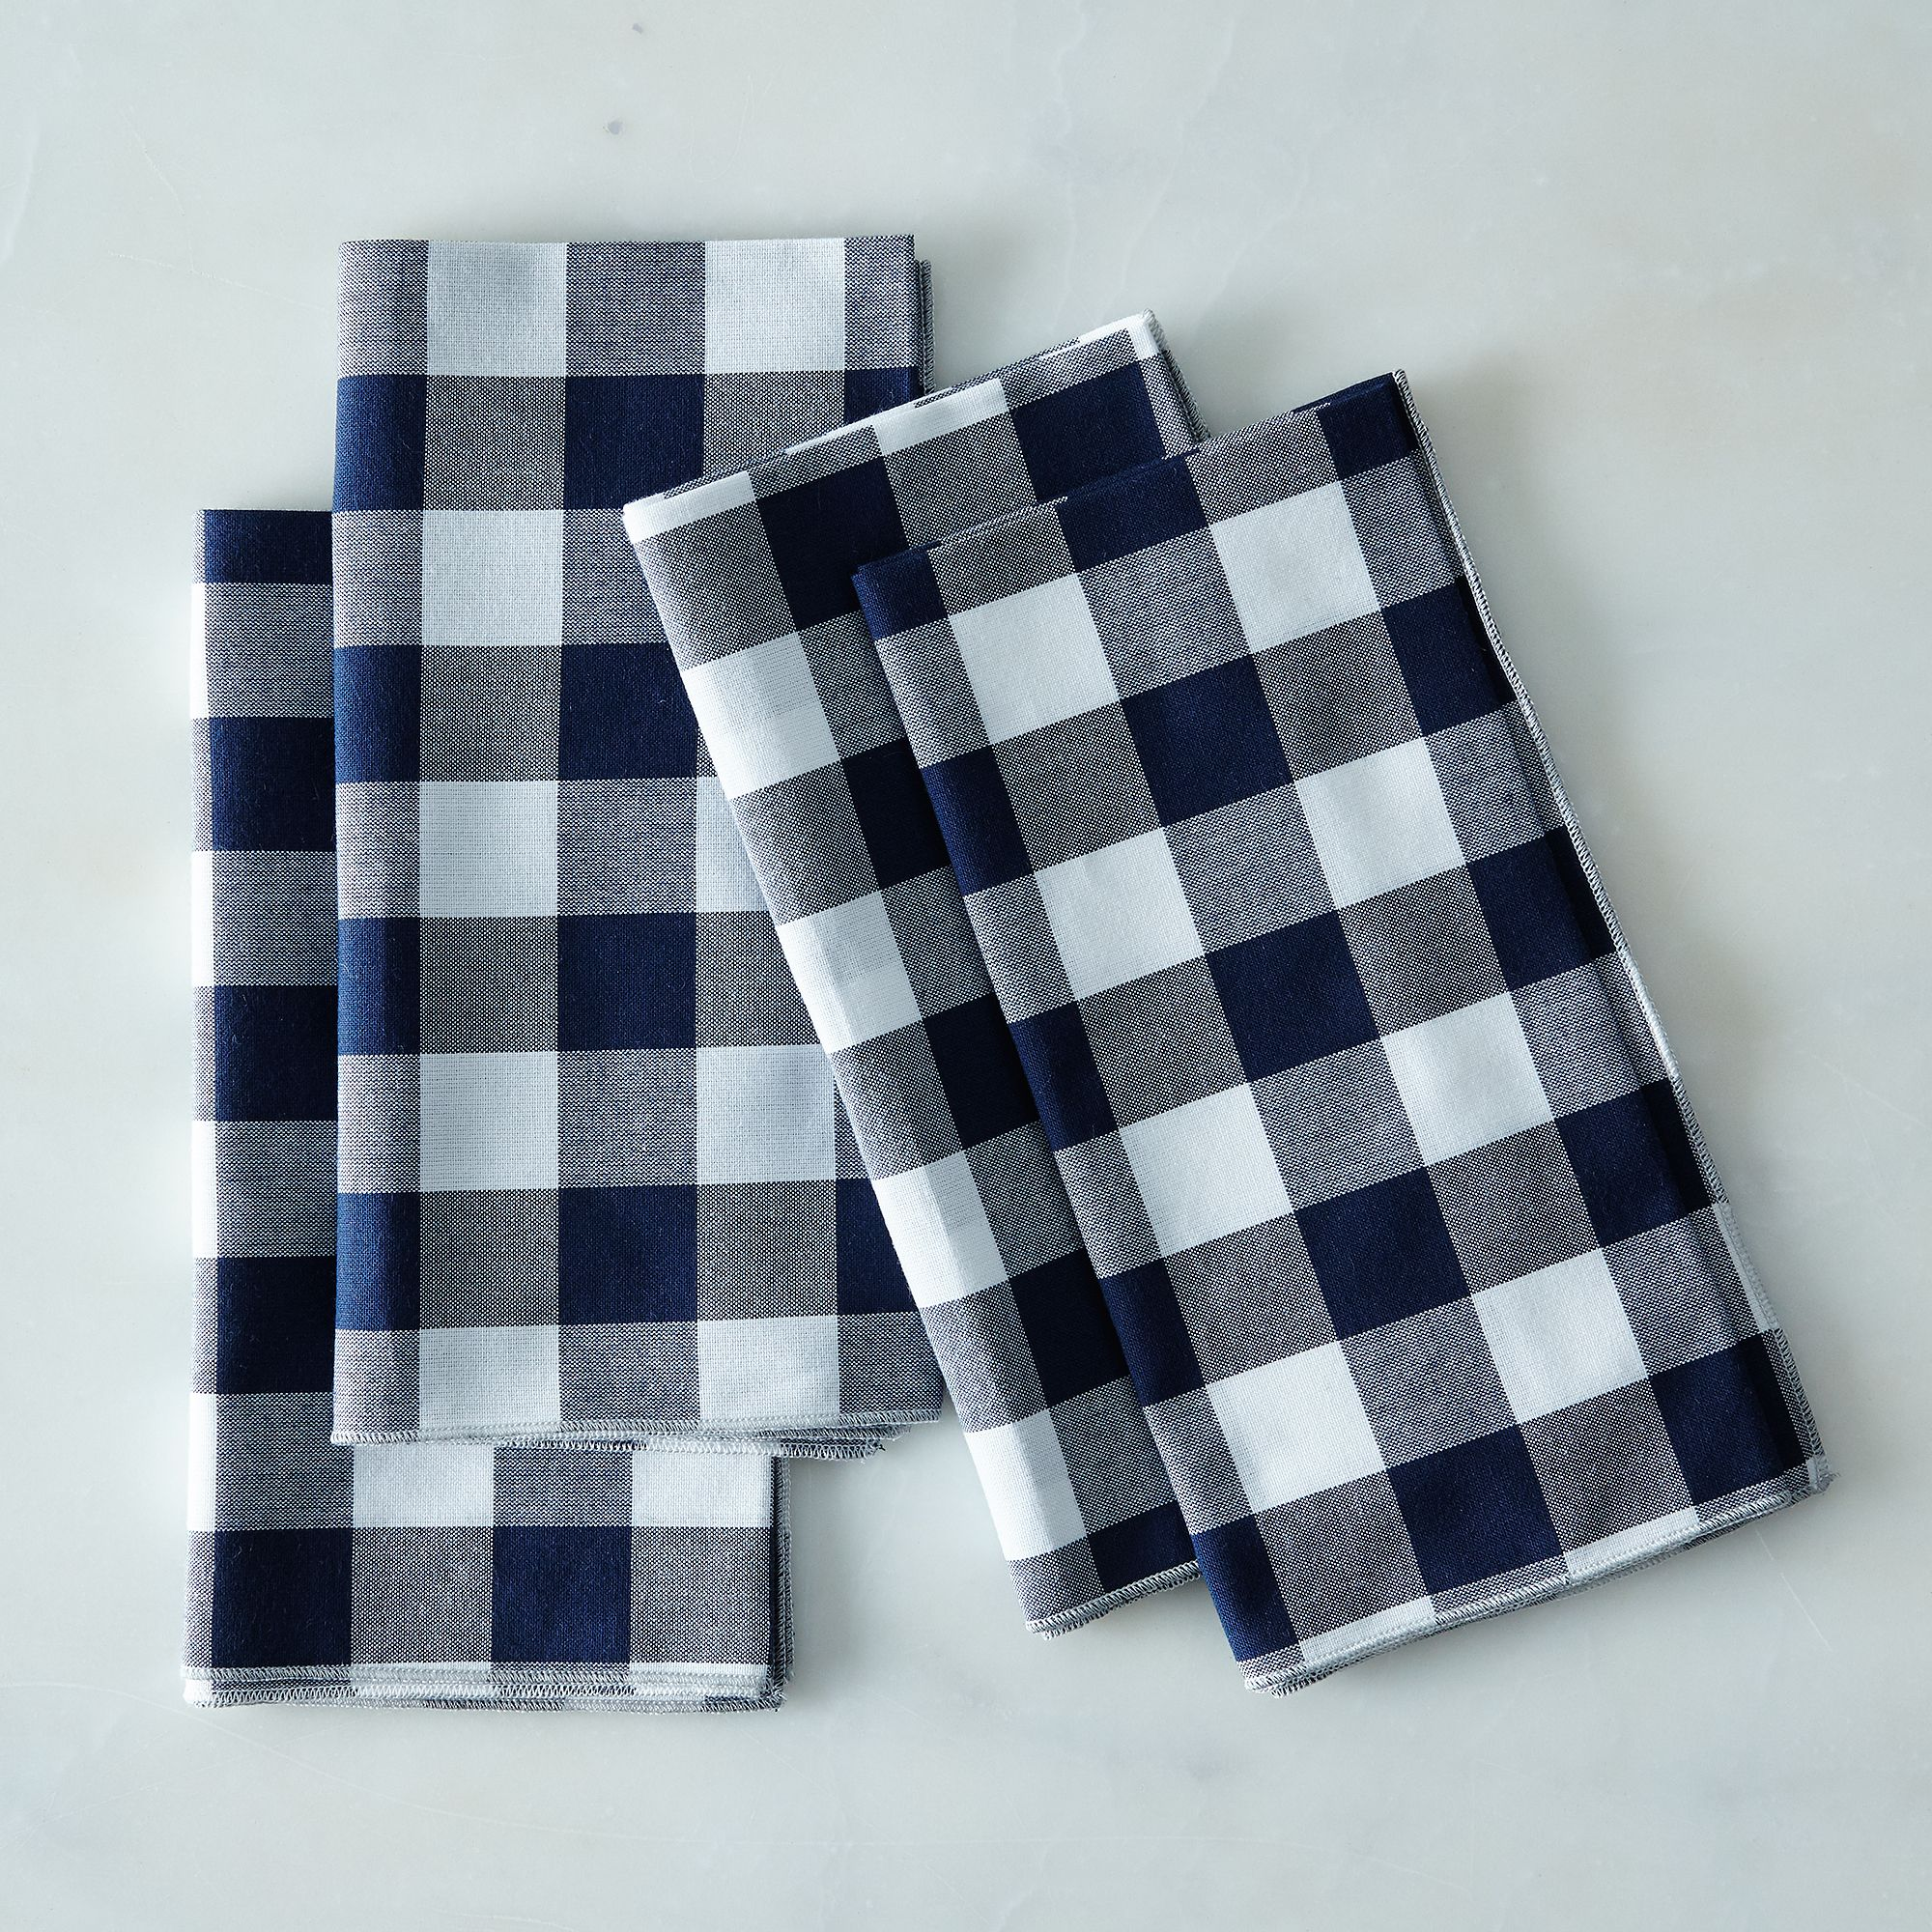 6a3a207c e6b4 4f41 beb1 2ddc69e62078  2016 0513 dot and army gingham cloth napkins set of 4 navy silo rocky luten 005